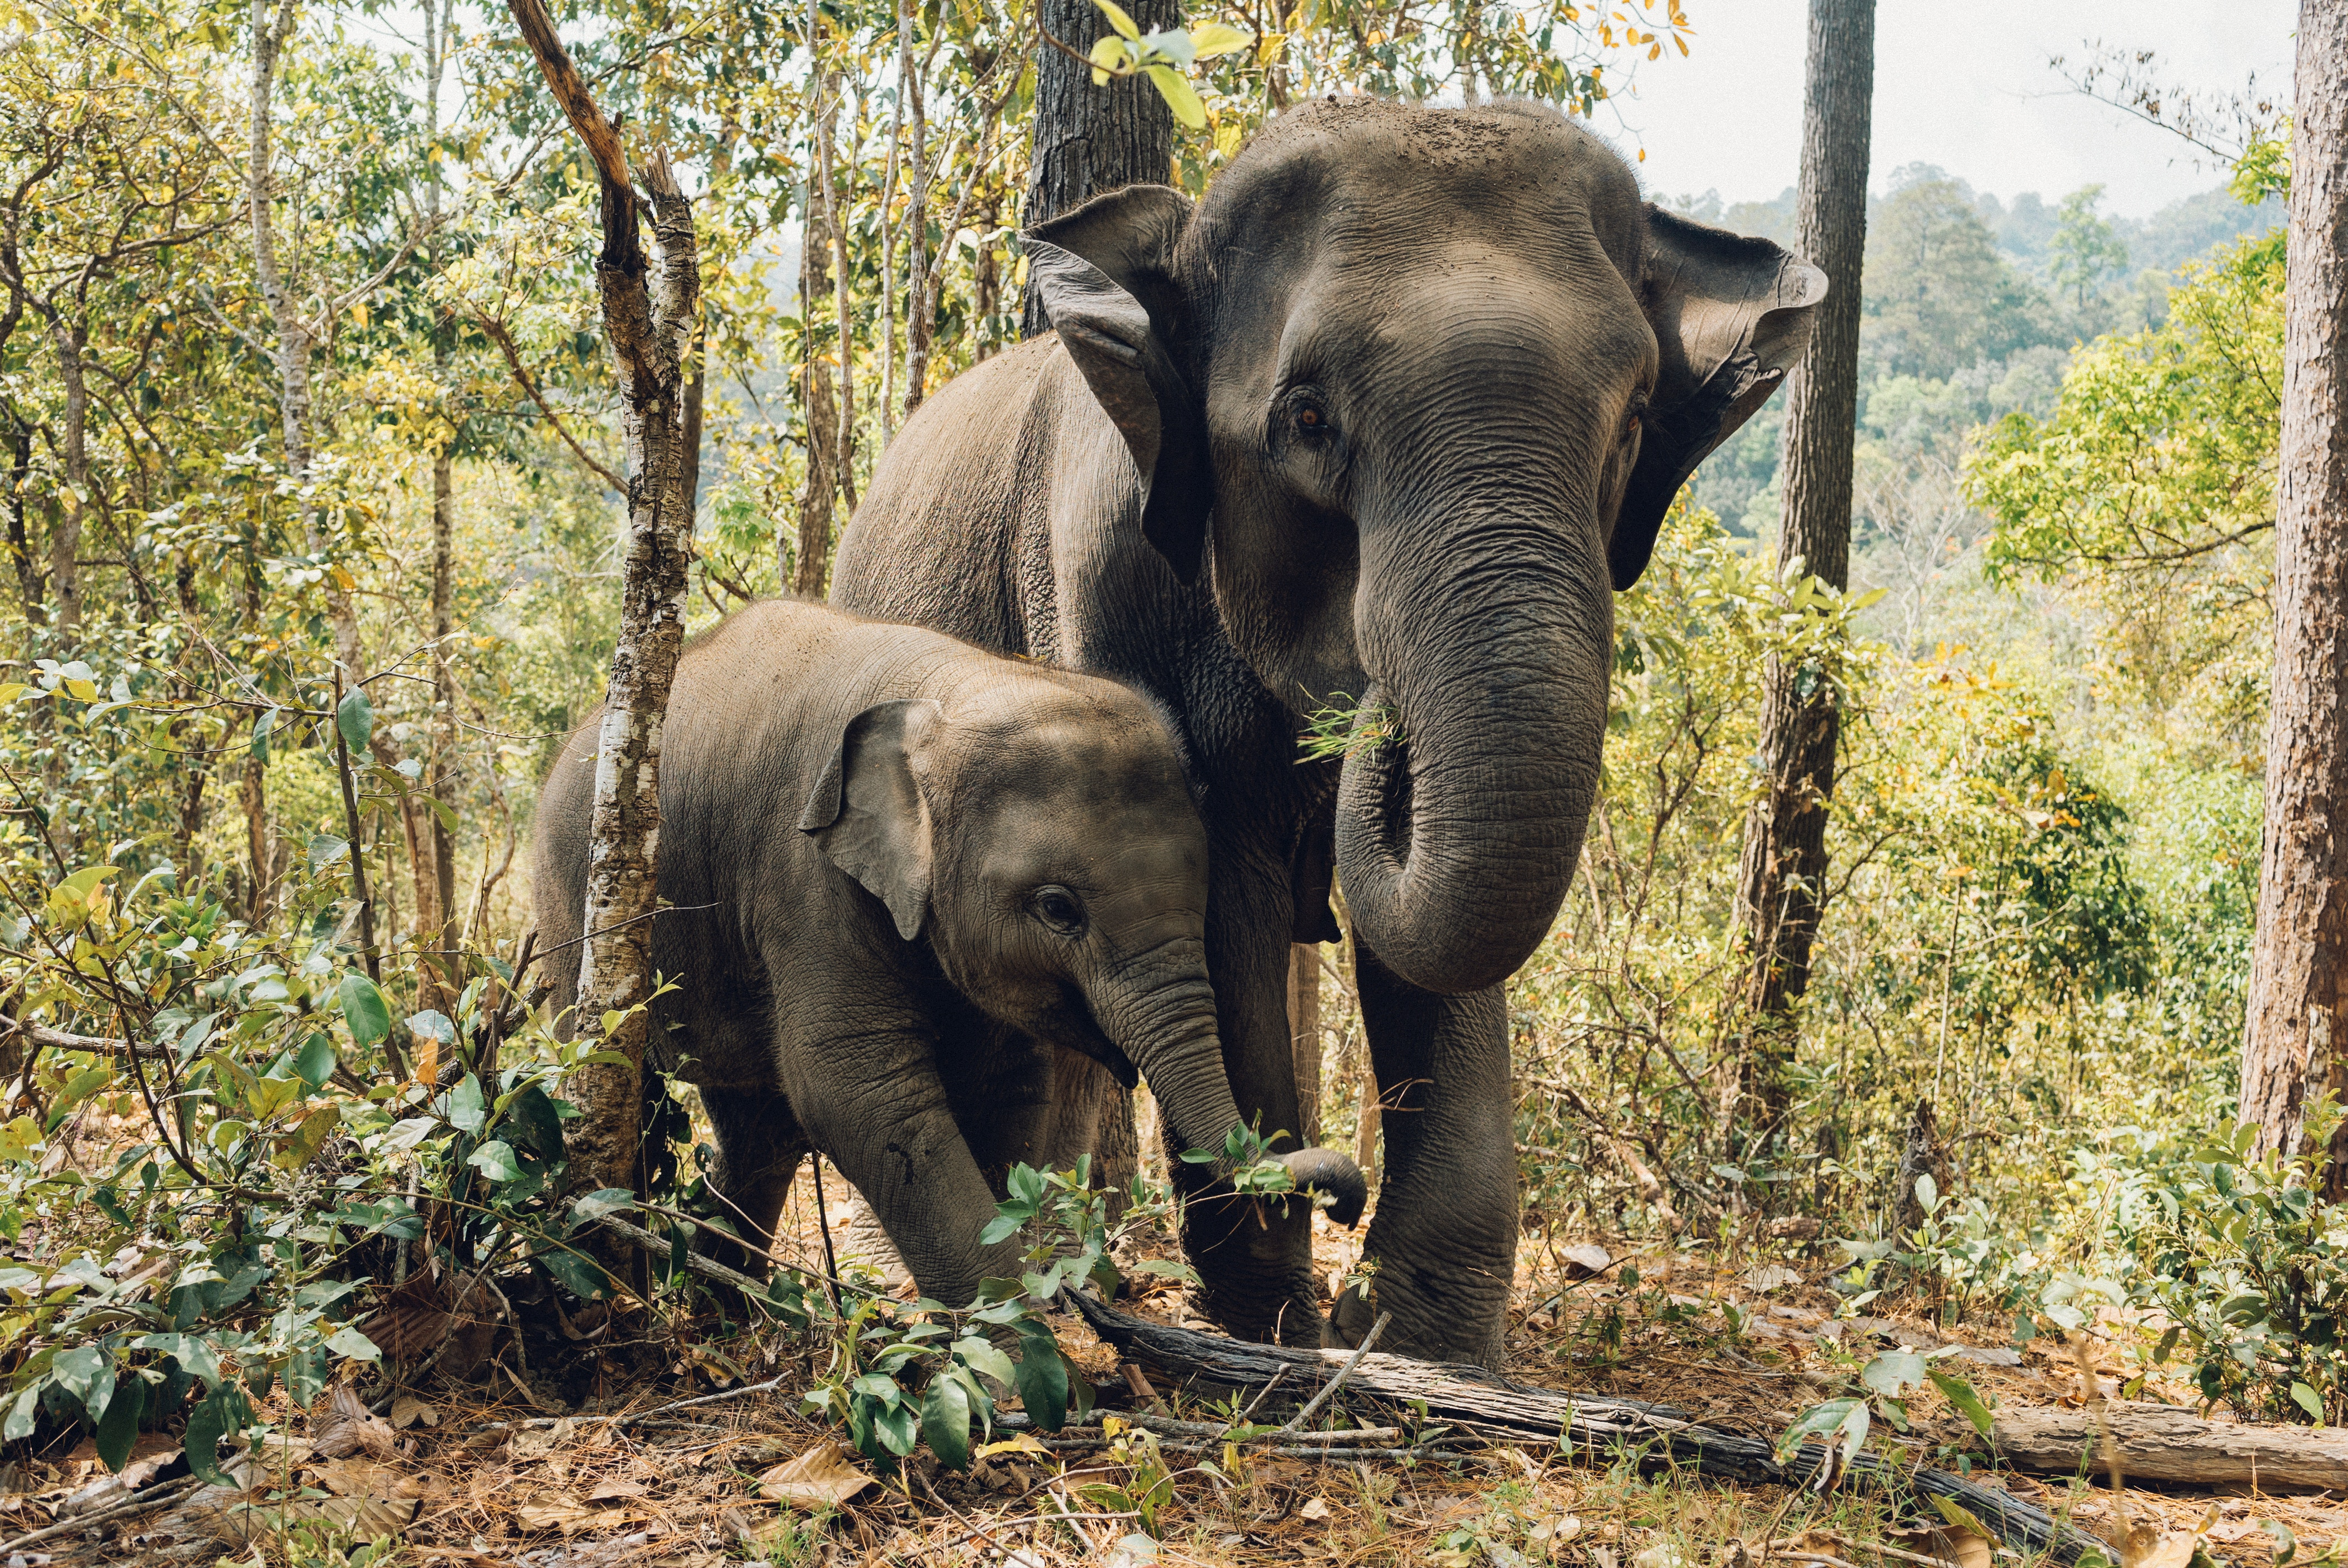 elephants on a wildlife tour in thailand